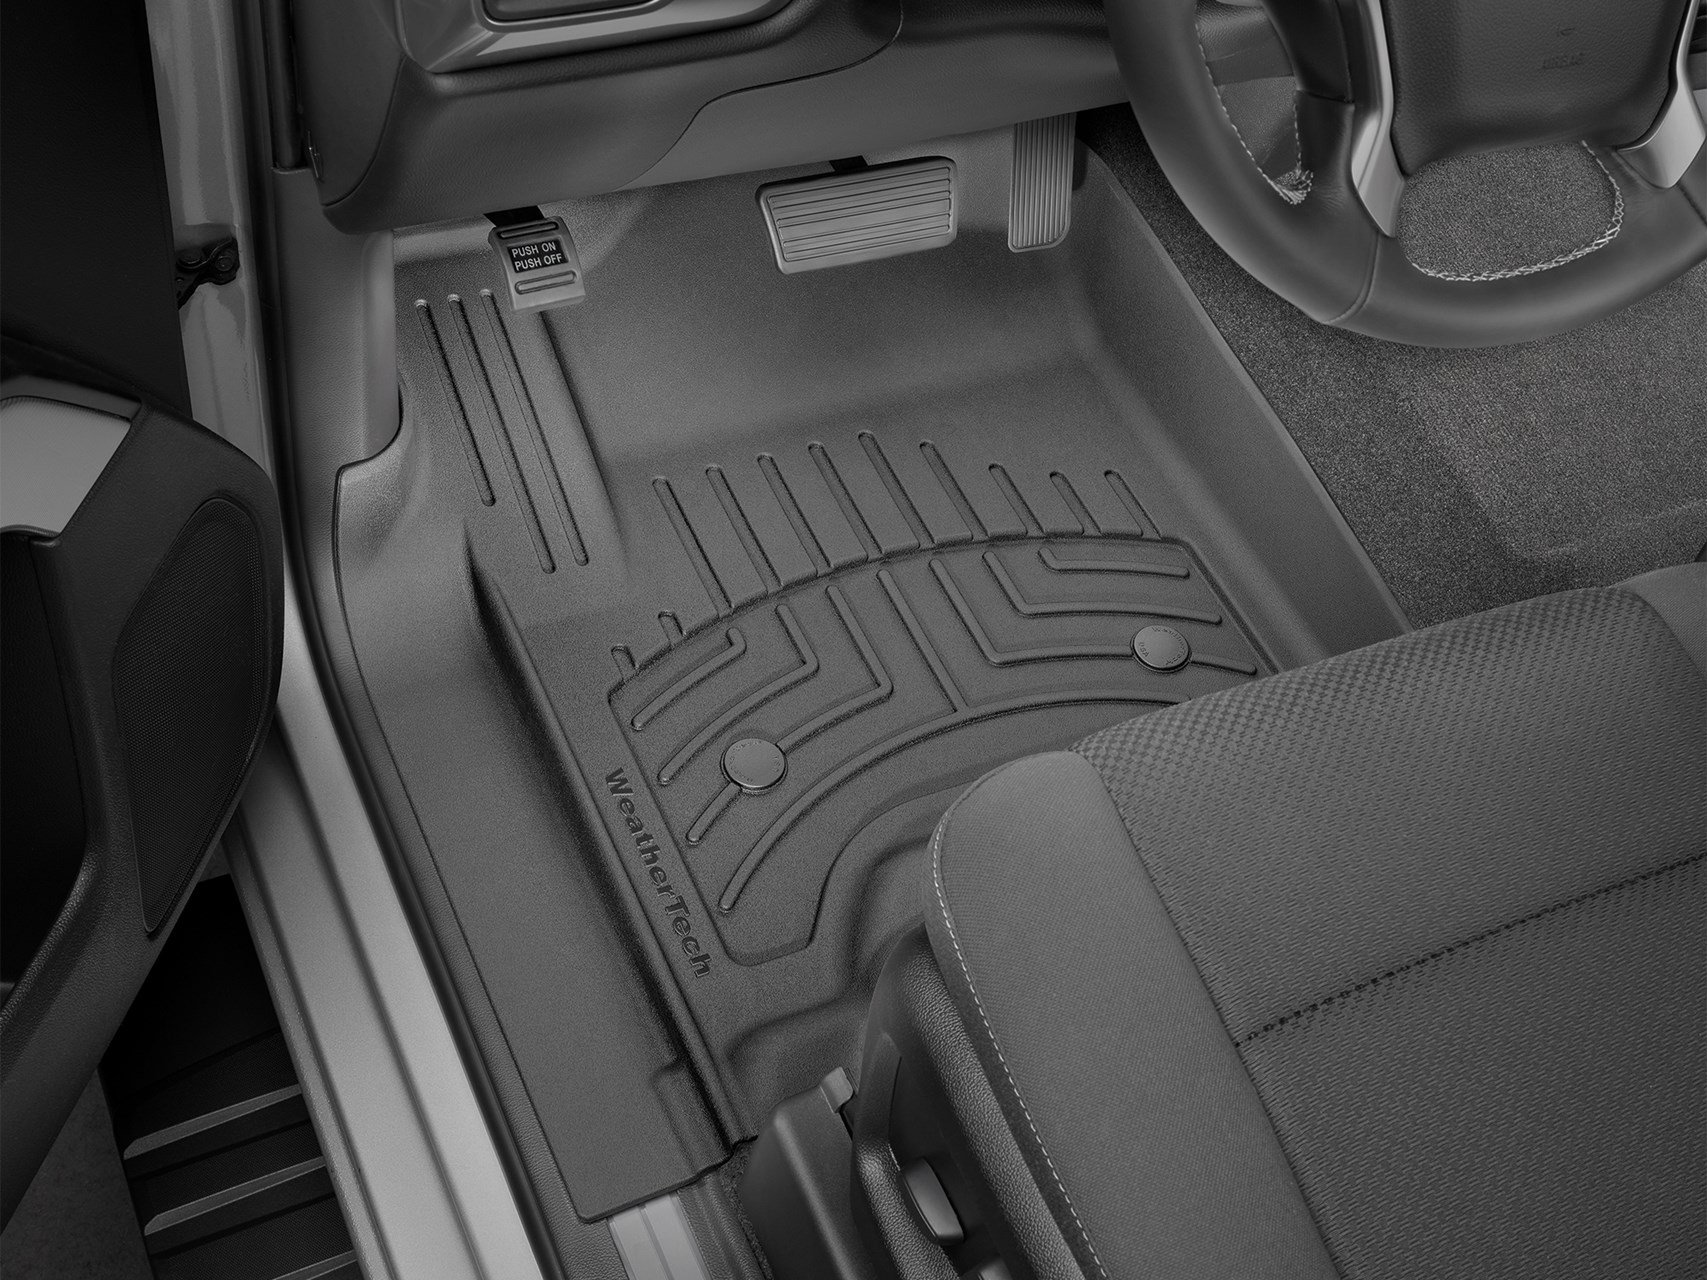 Protecting Your Car With All-Weather Floor Mats